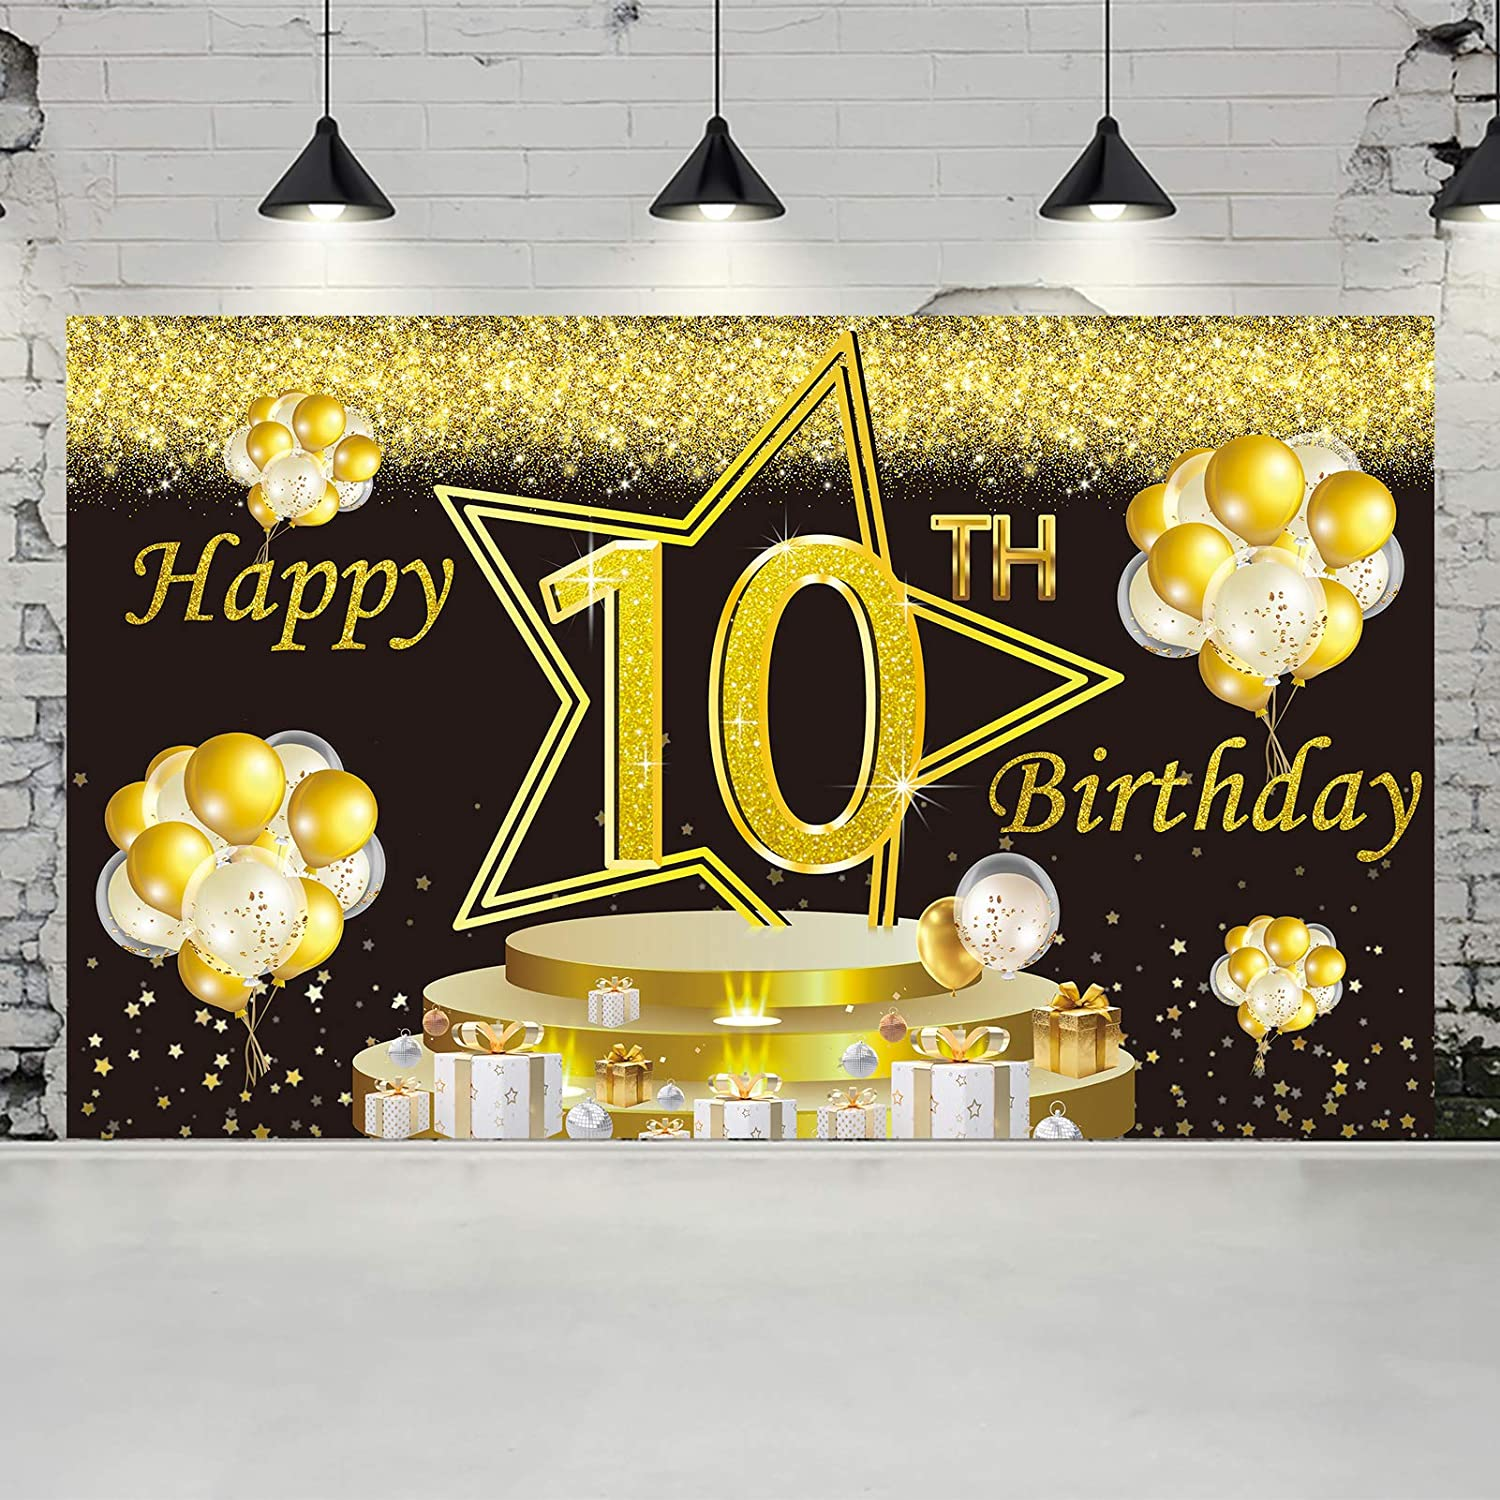 Gold and Black Ushinemi Happy 18th Birthday Backdrop 18 Years Old Birthday Banner Party Decorations Large Bday Wall Decor Signs 6X3.6 Ft